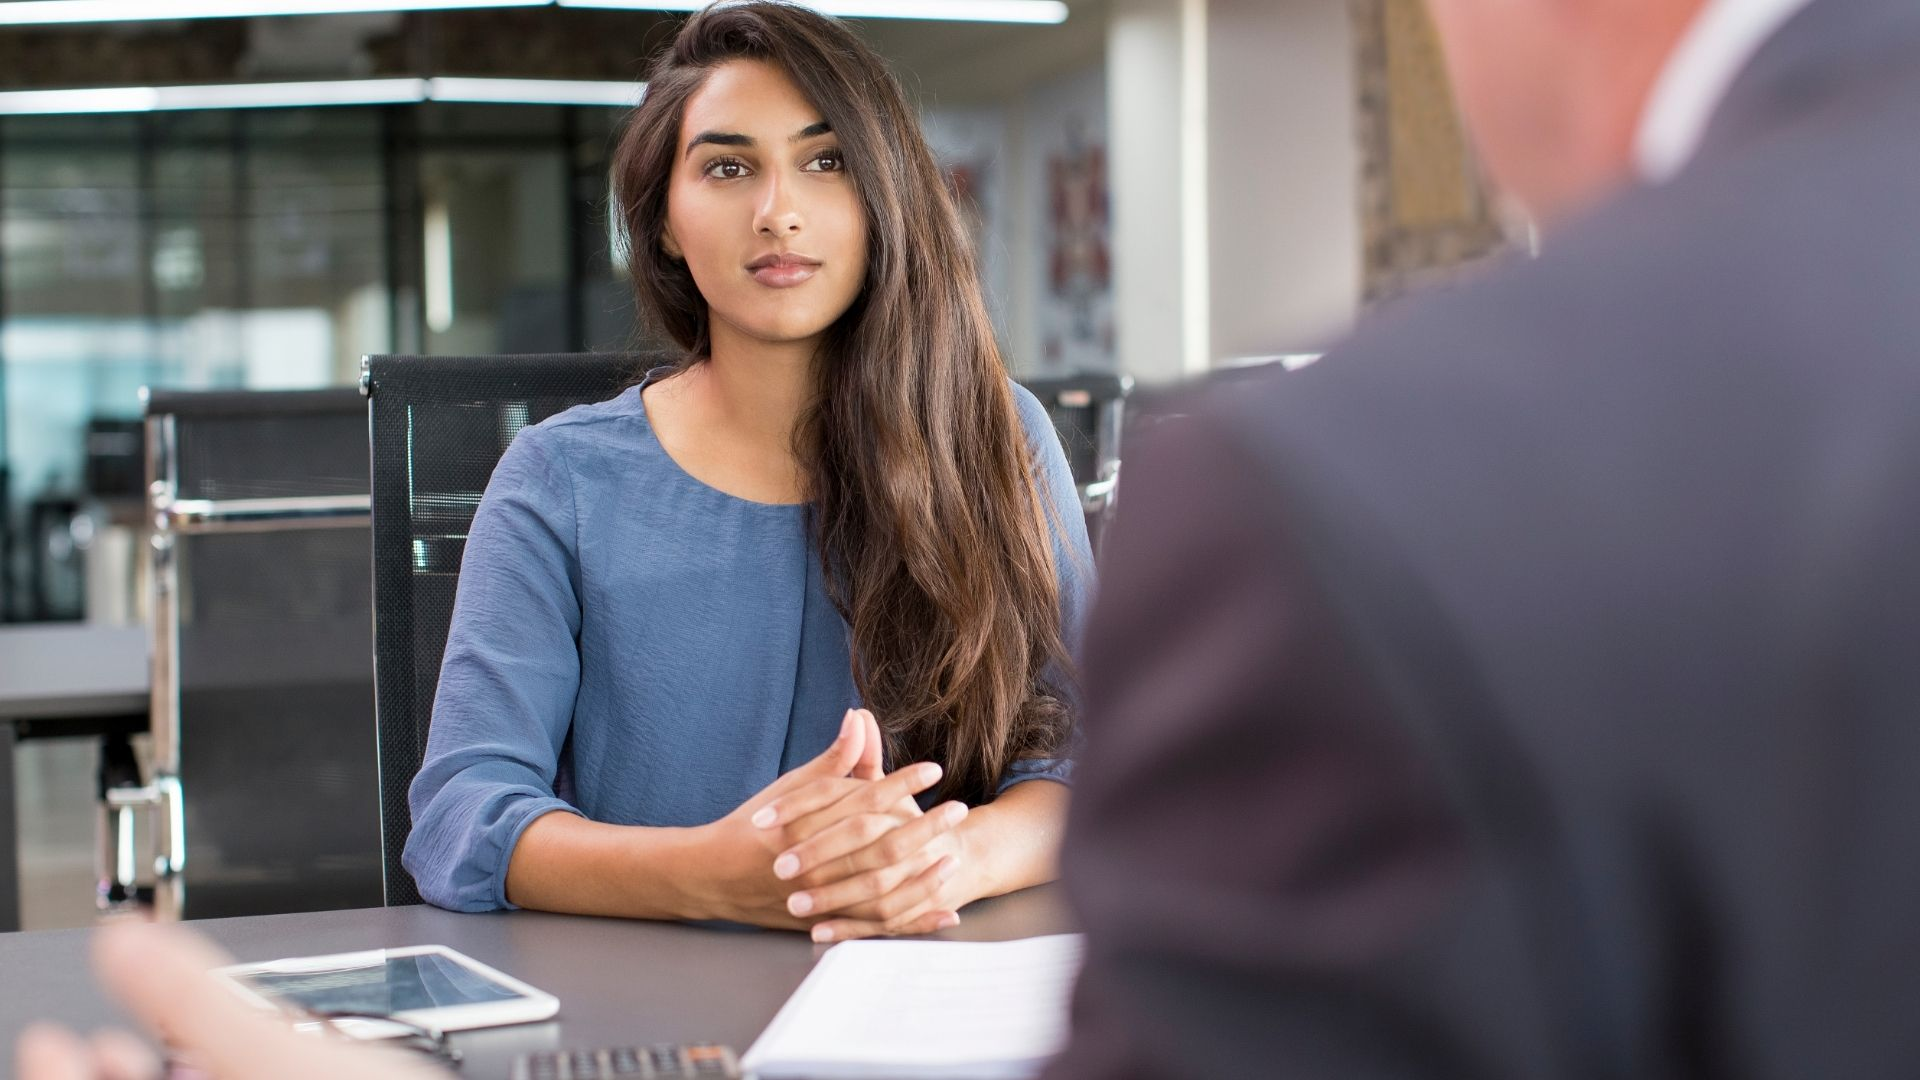 How to deal with niche employment law?